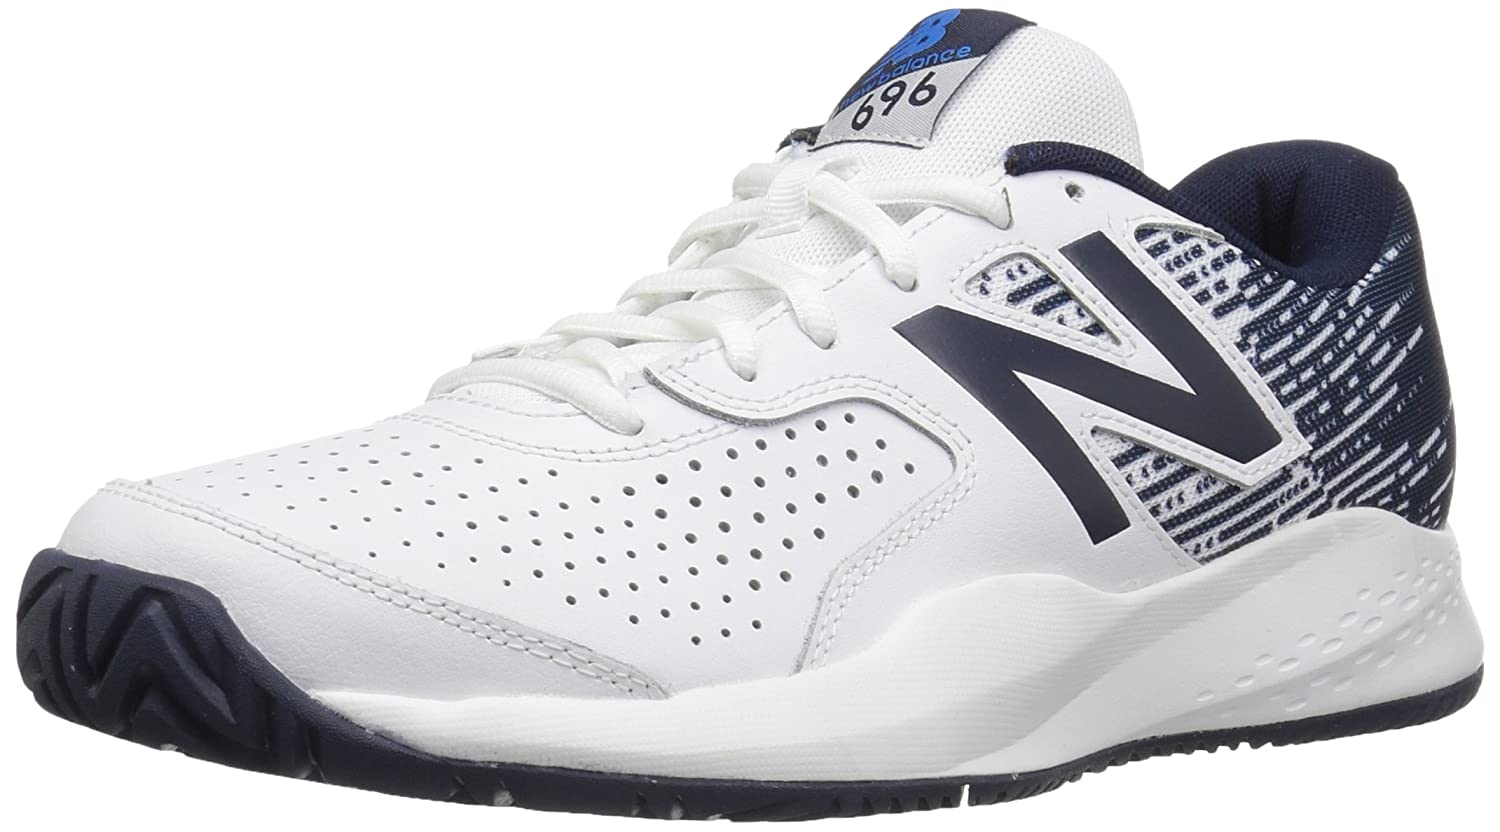 New Balance Herren 696v3 Tennisschuhe, Parent MC696WB3